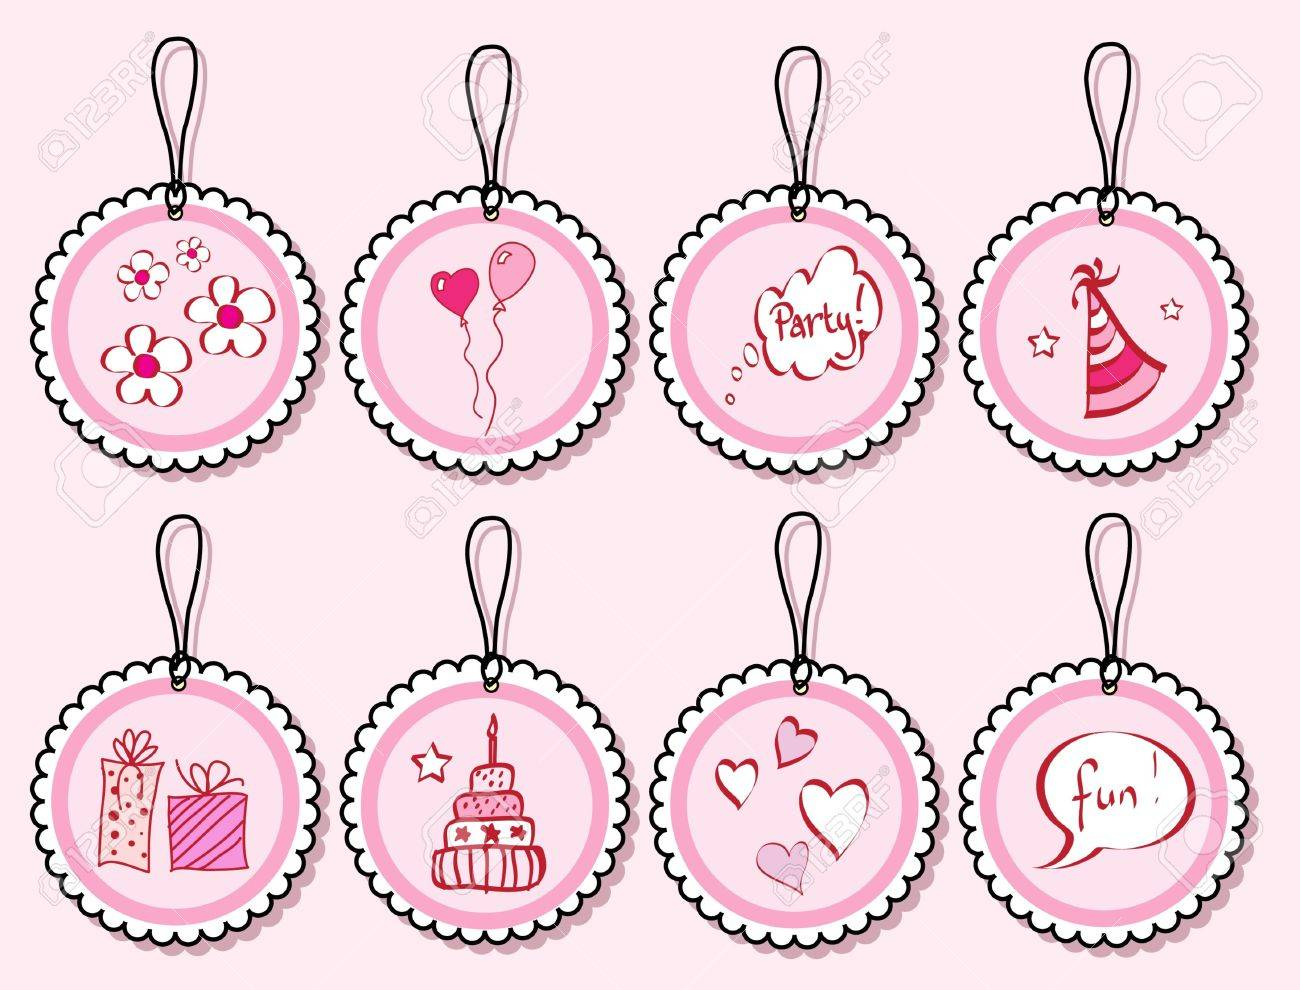 A set of birthday doodle gift tags in shades of pink. EPS10 vector format. Stock Vector - 10631593